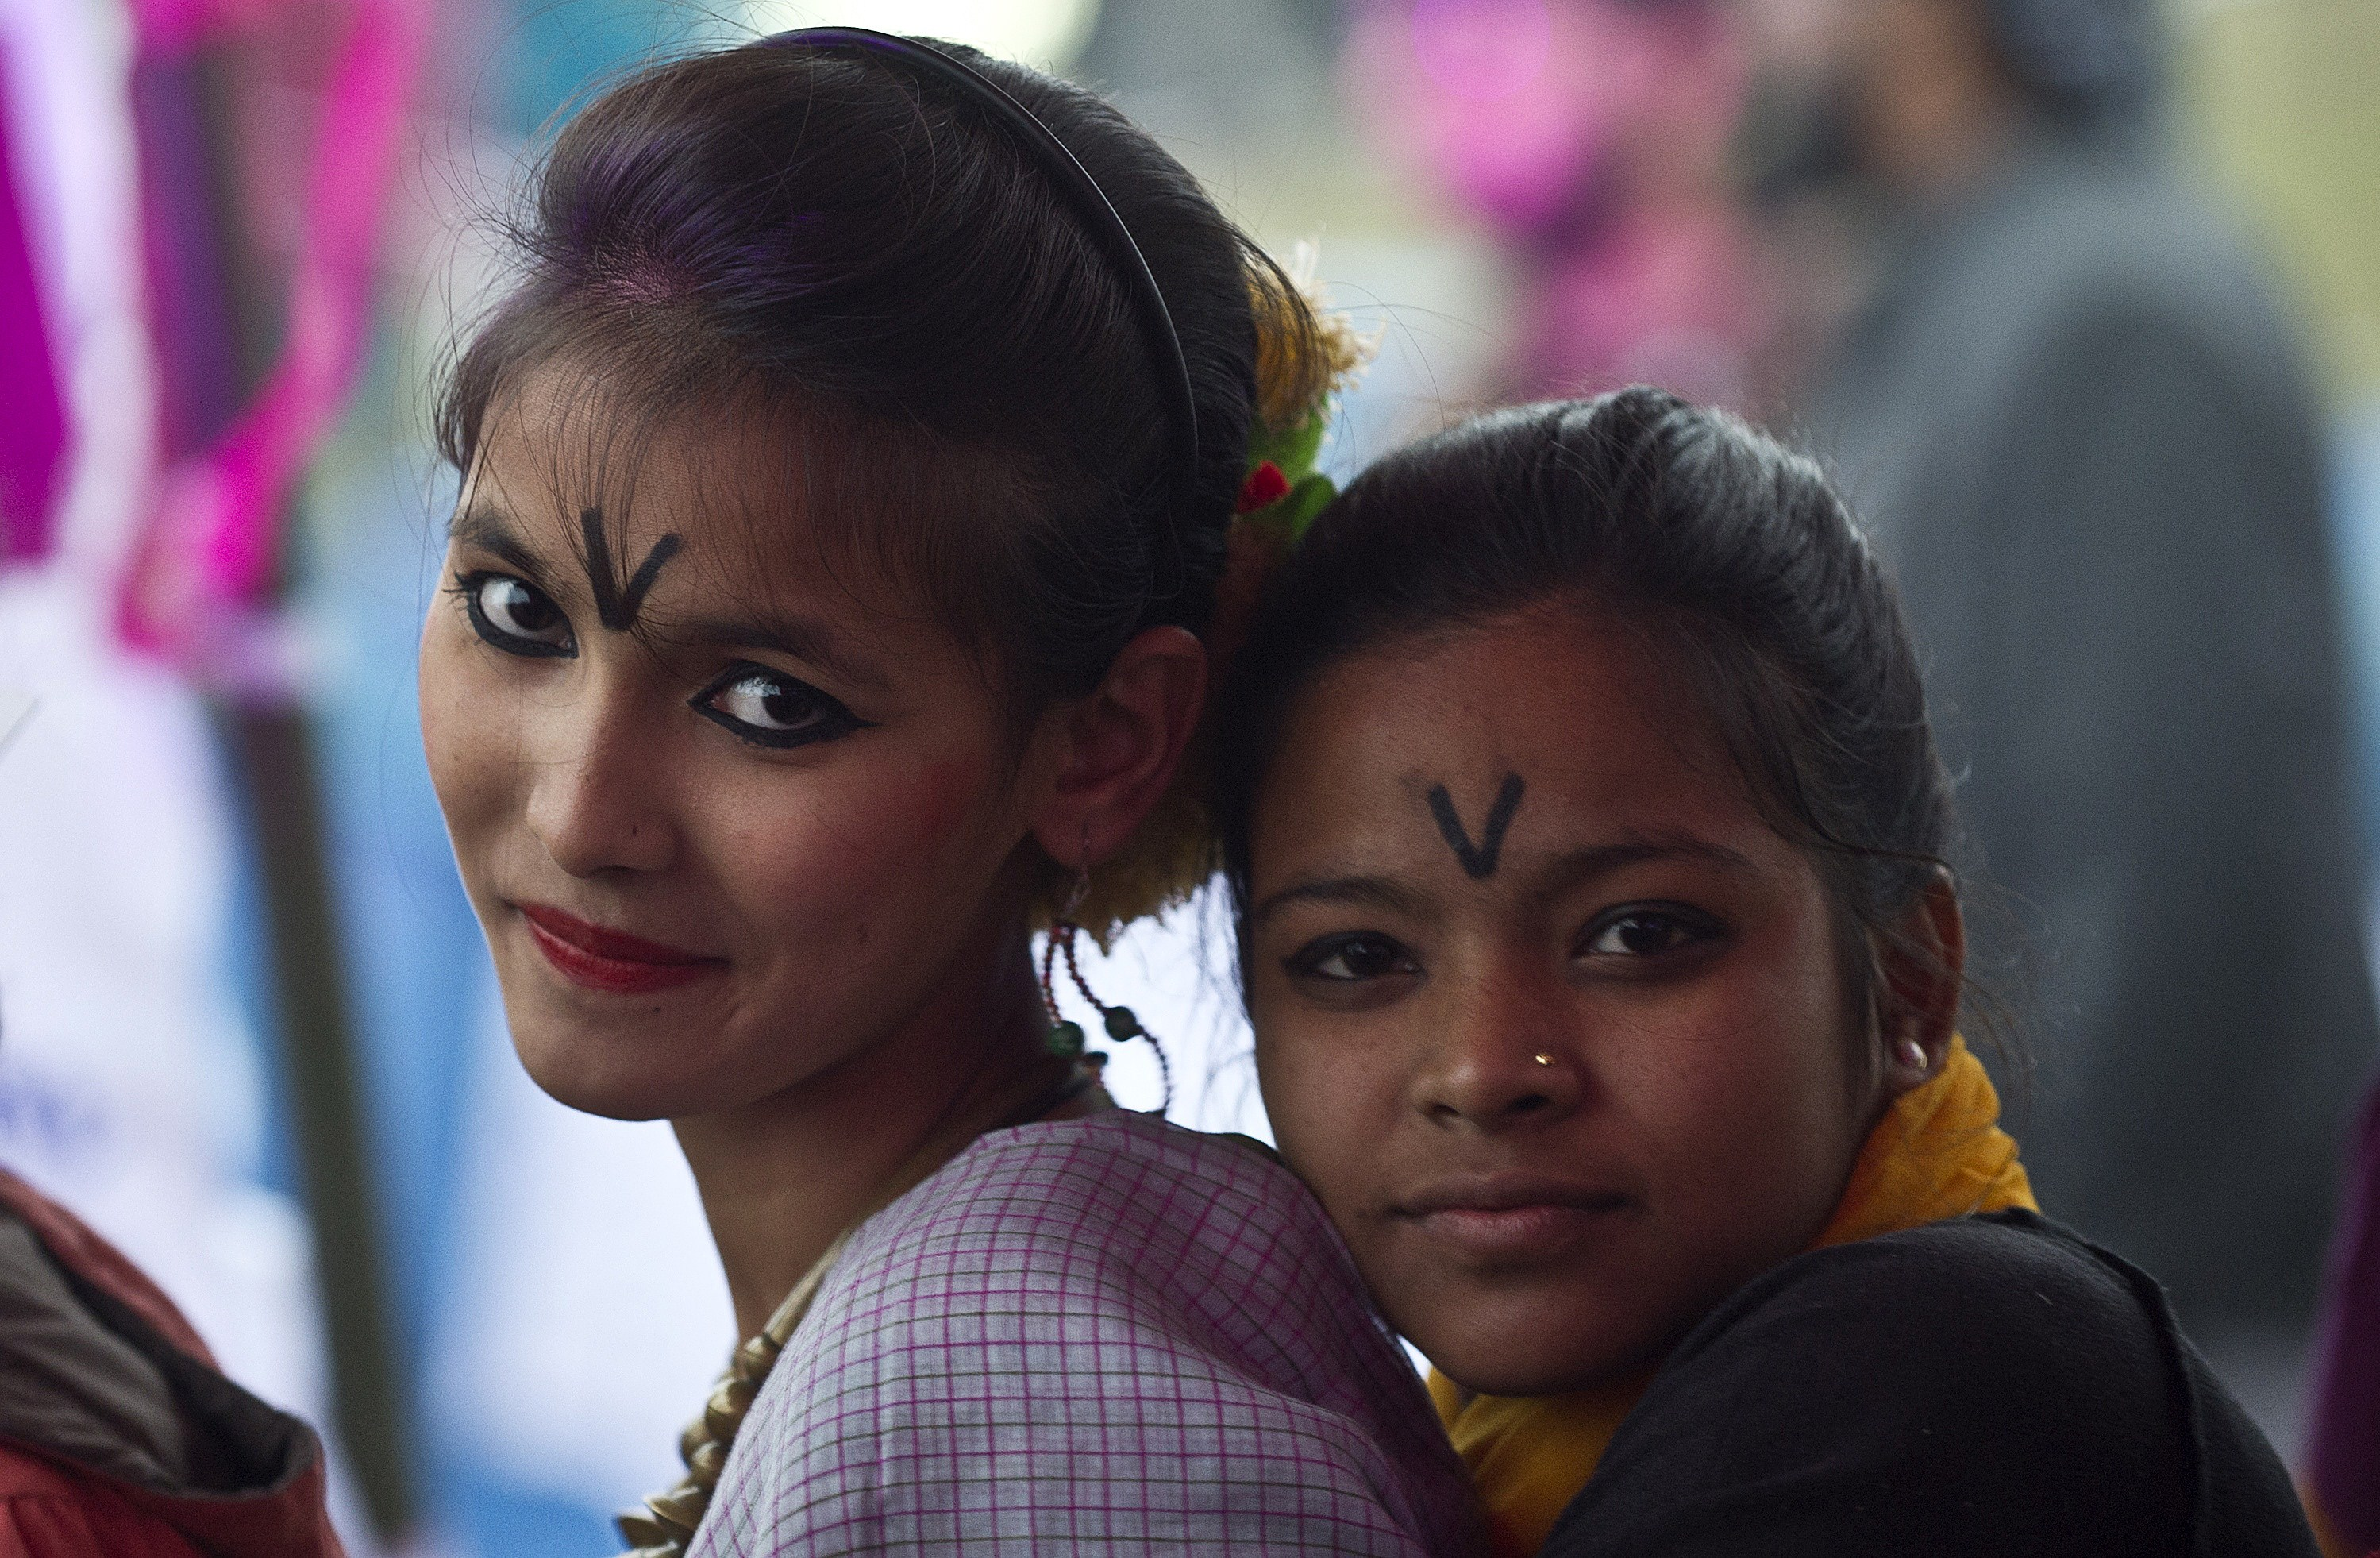 One Billion Rising event in New Delhi on February 14, 2014. The One Billion Rising campaign is a global call for an end to violence against women and girls and that survivors should receive justice. PRAKASH SINGH/AFP/Getty Images